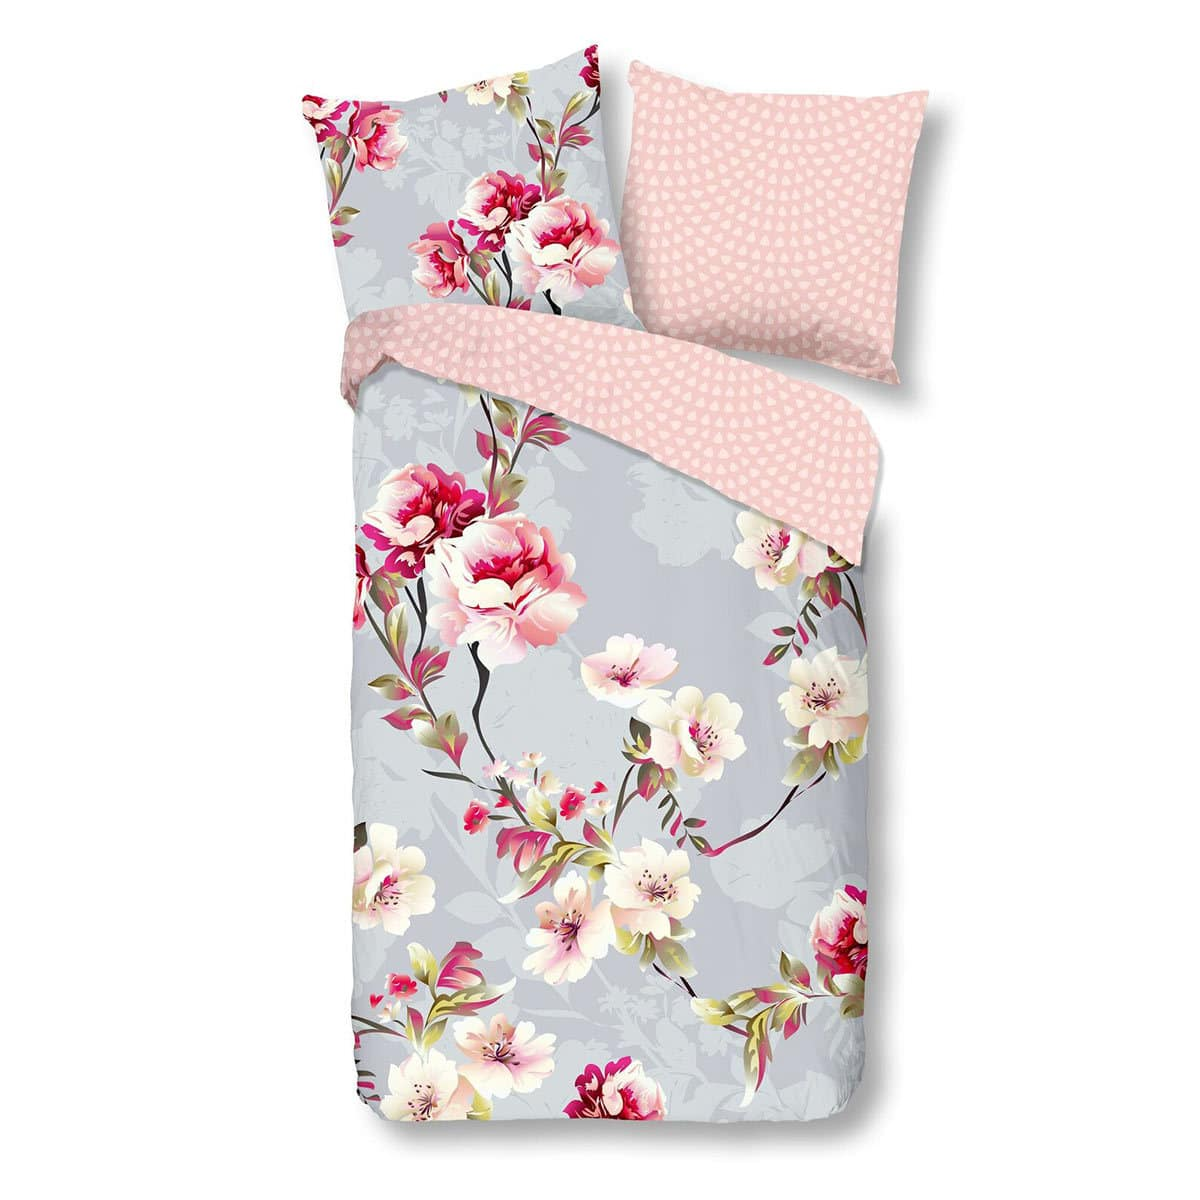 Renforce Bettwäsche Mit Polyester Good Morning Renforce Bettwäsche Blume Grey